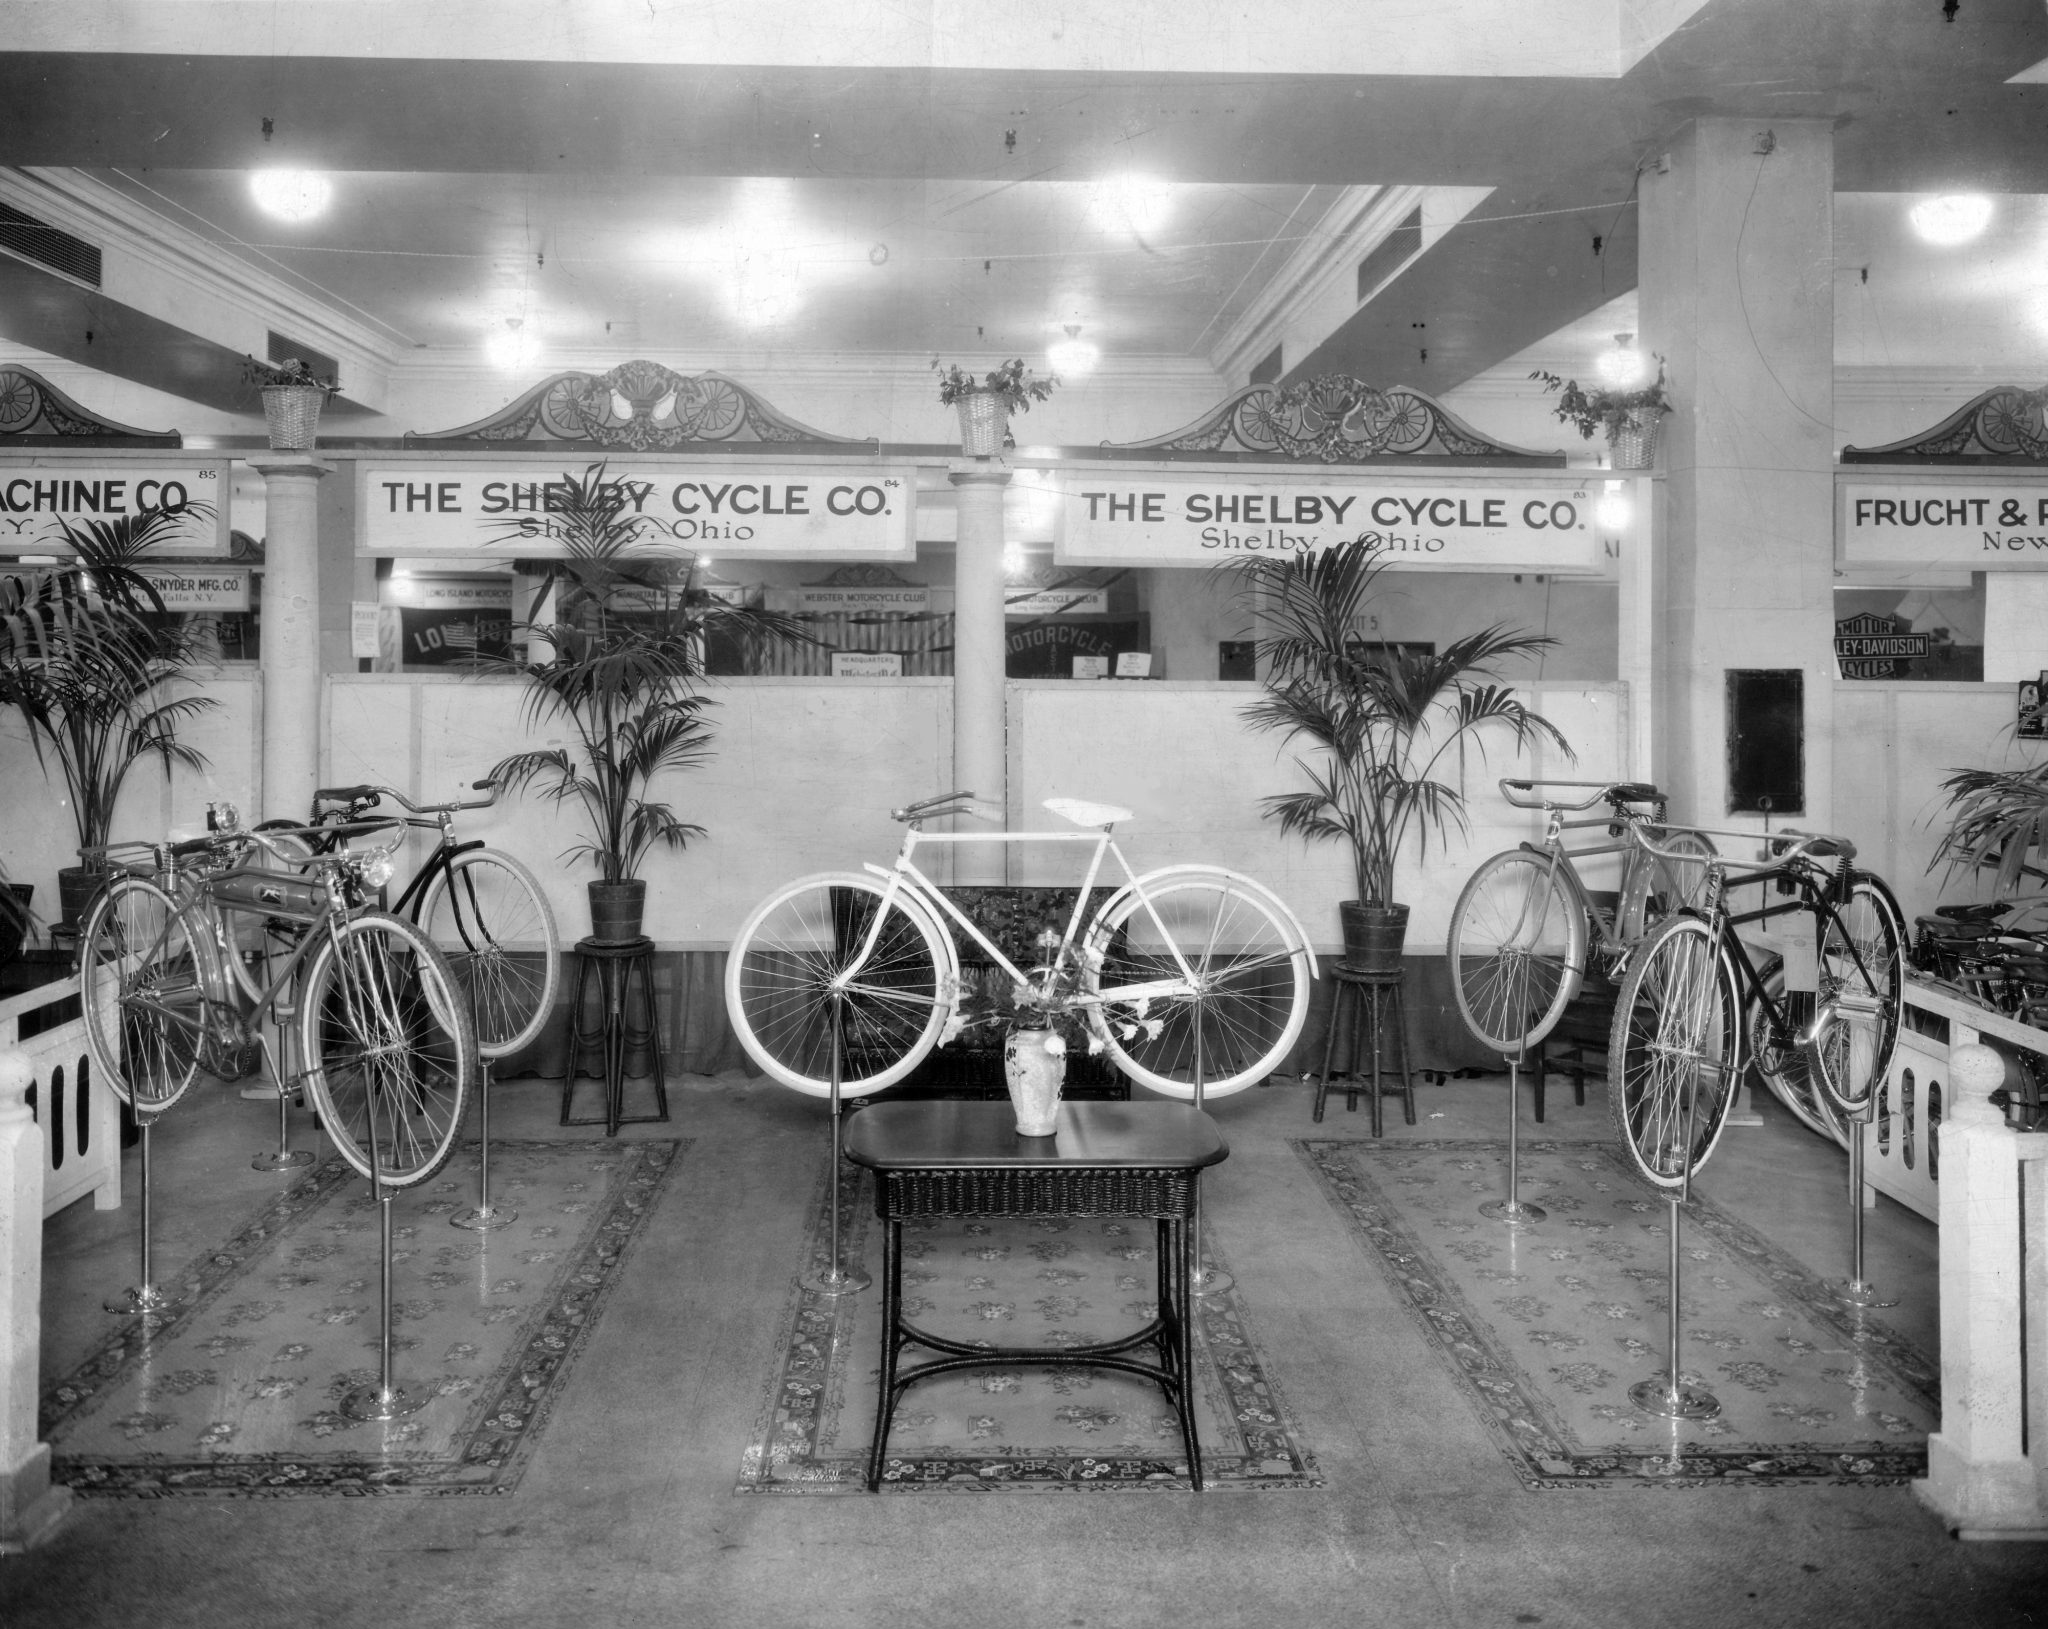 Shelby Cycle Co Sales Display